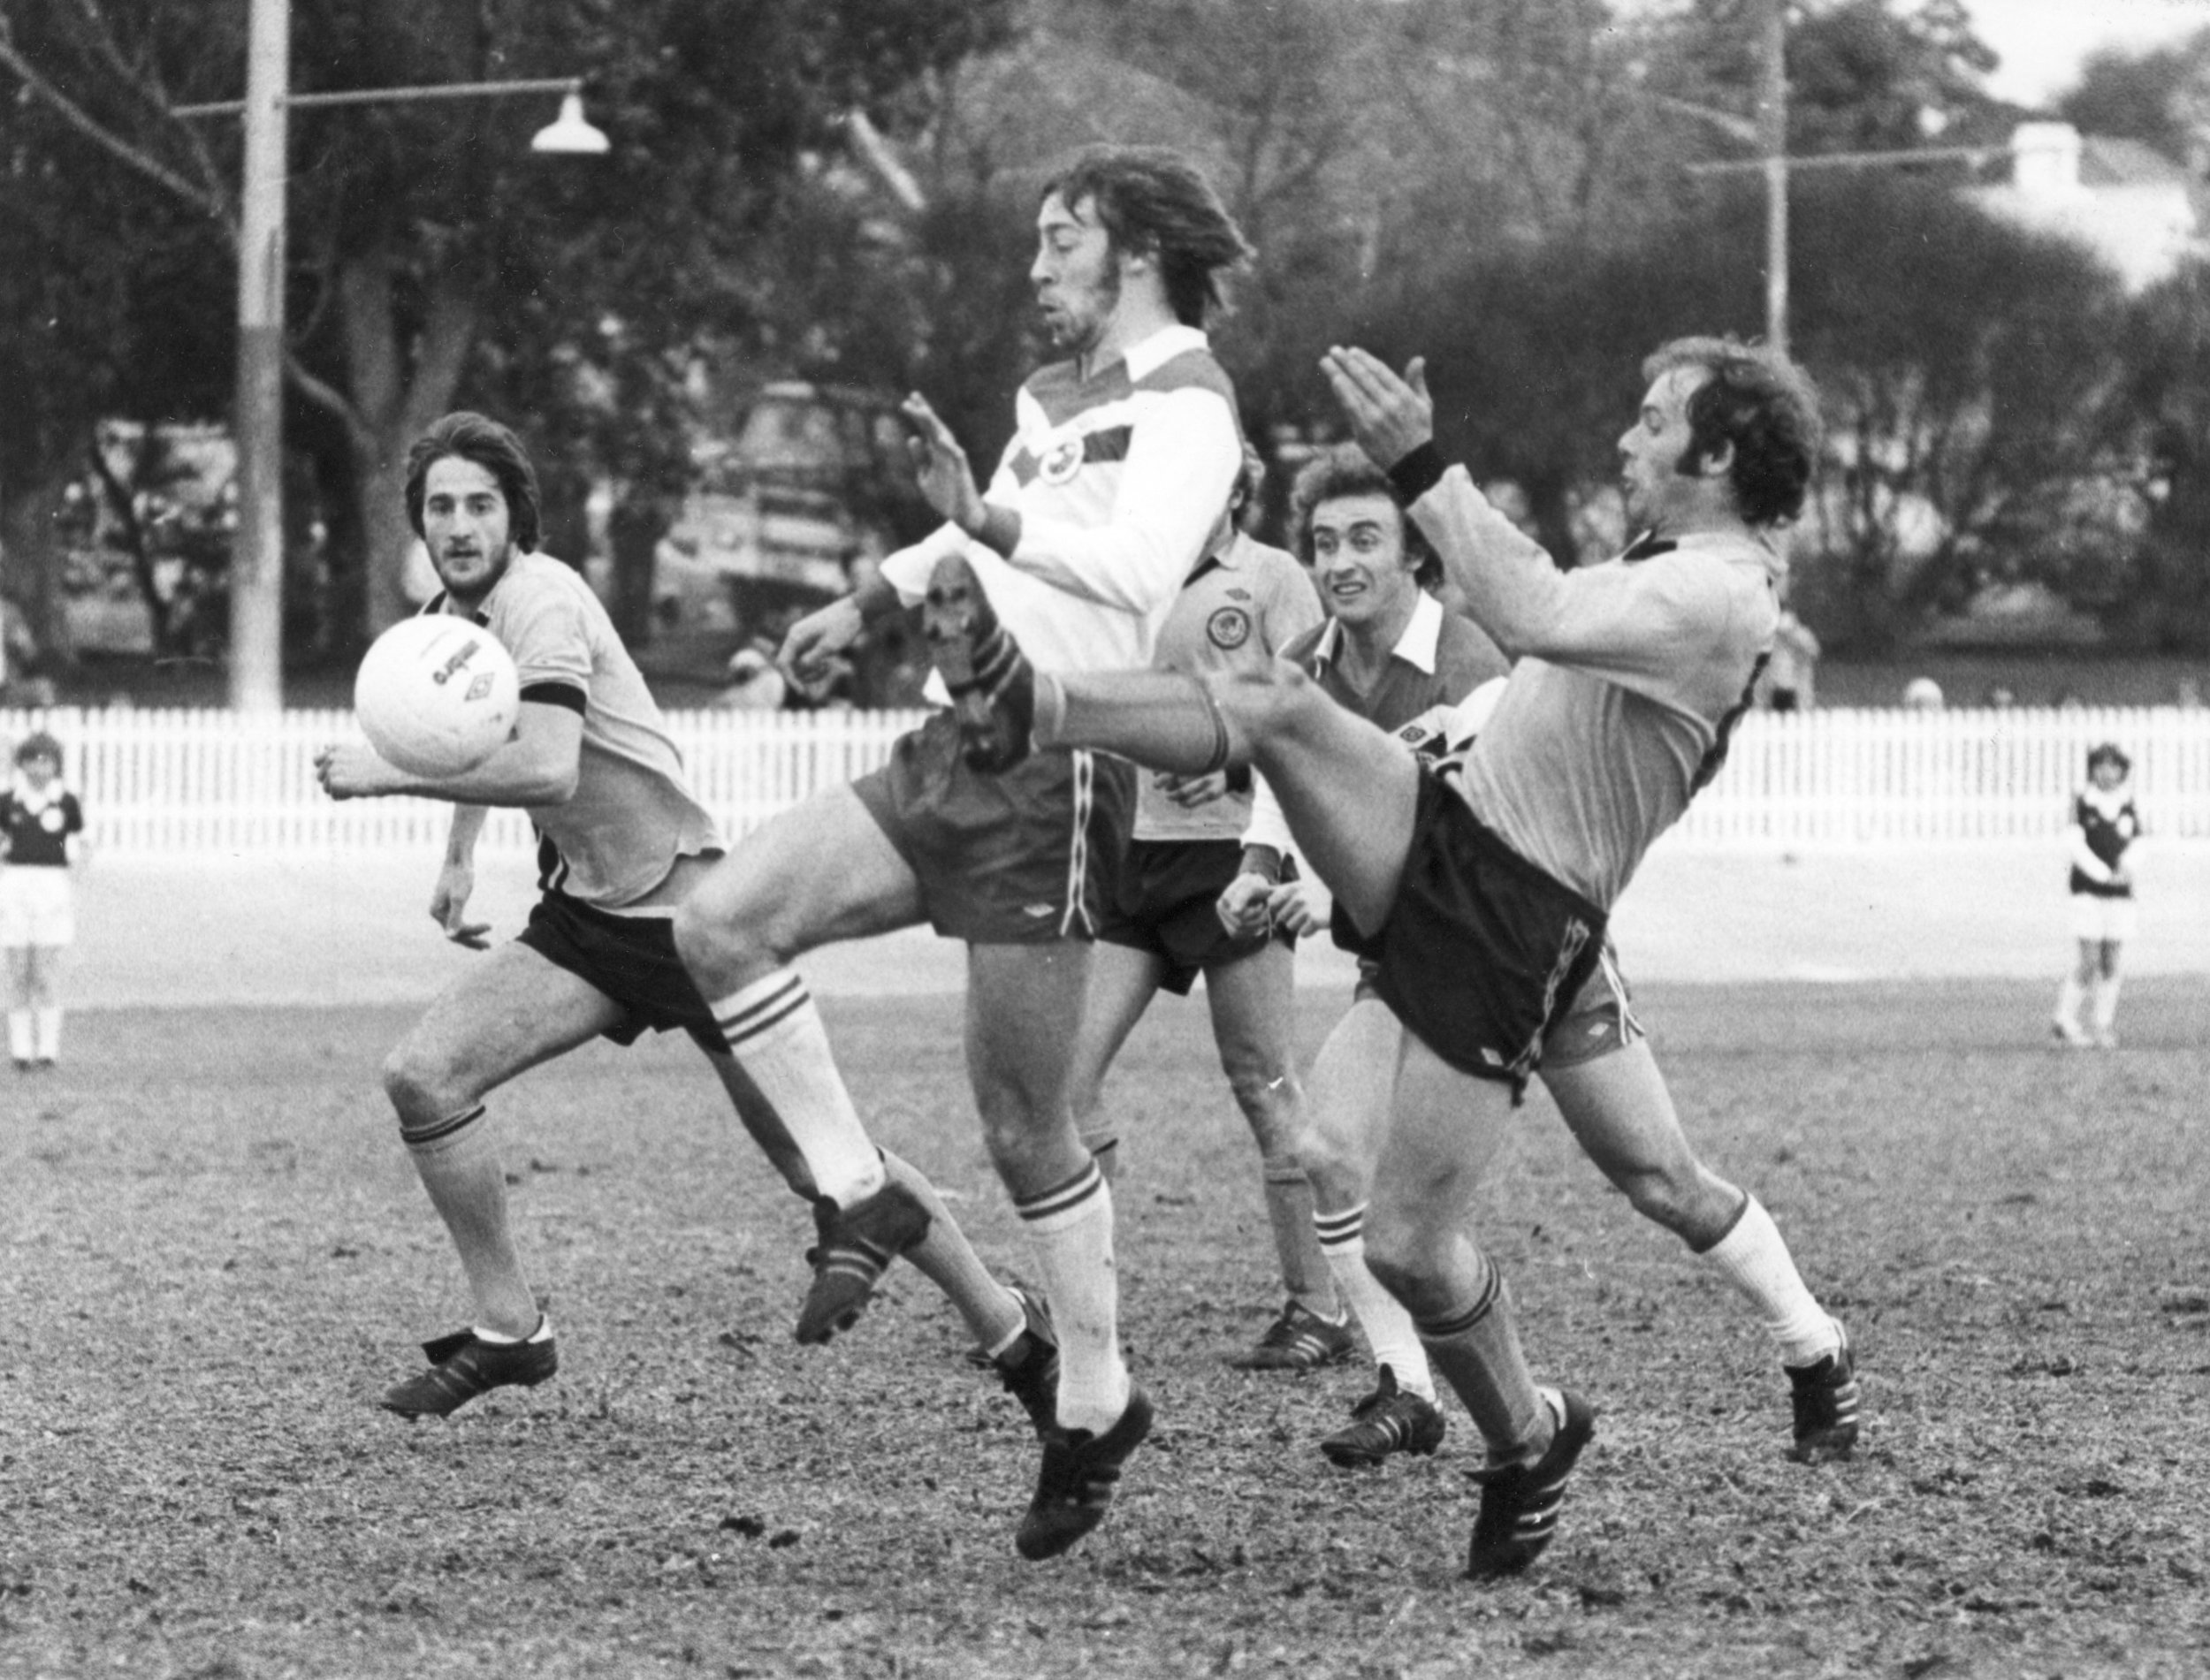 Charlie George playing for St George Vs Fitzroy at Hurstville Oval 1977